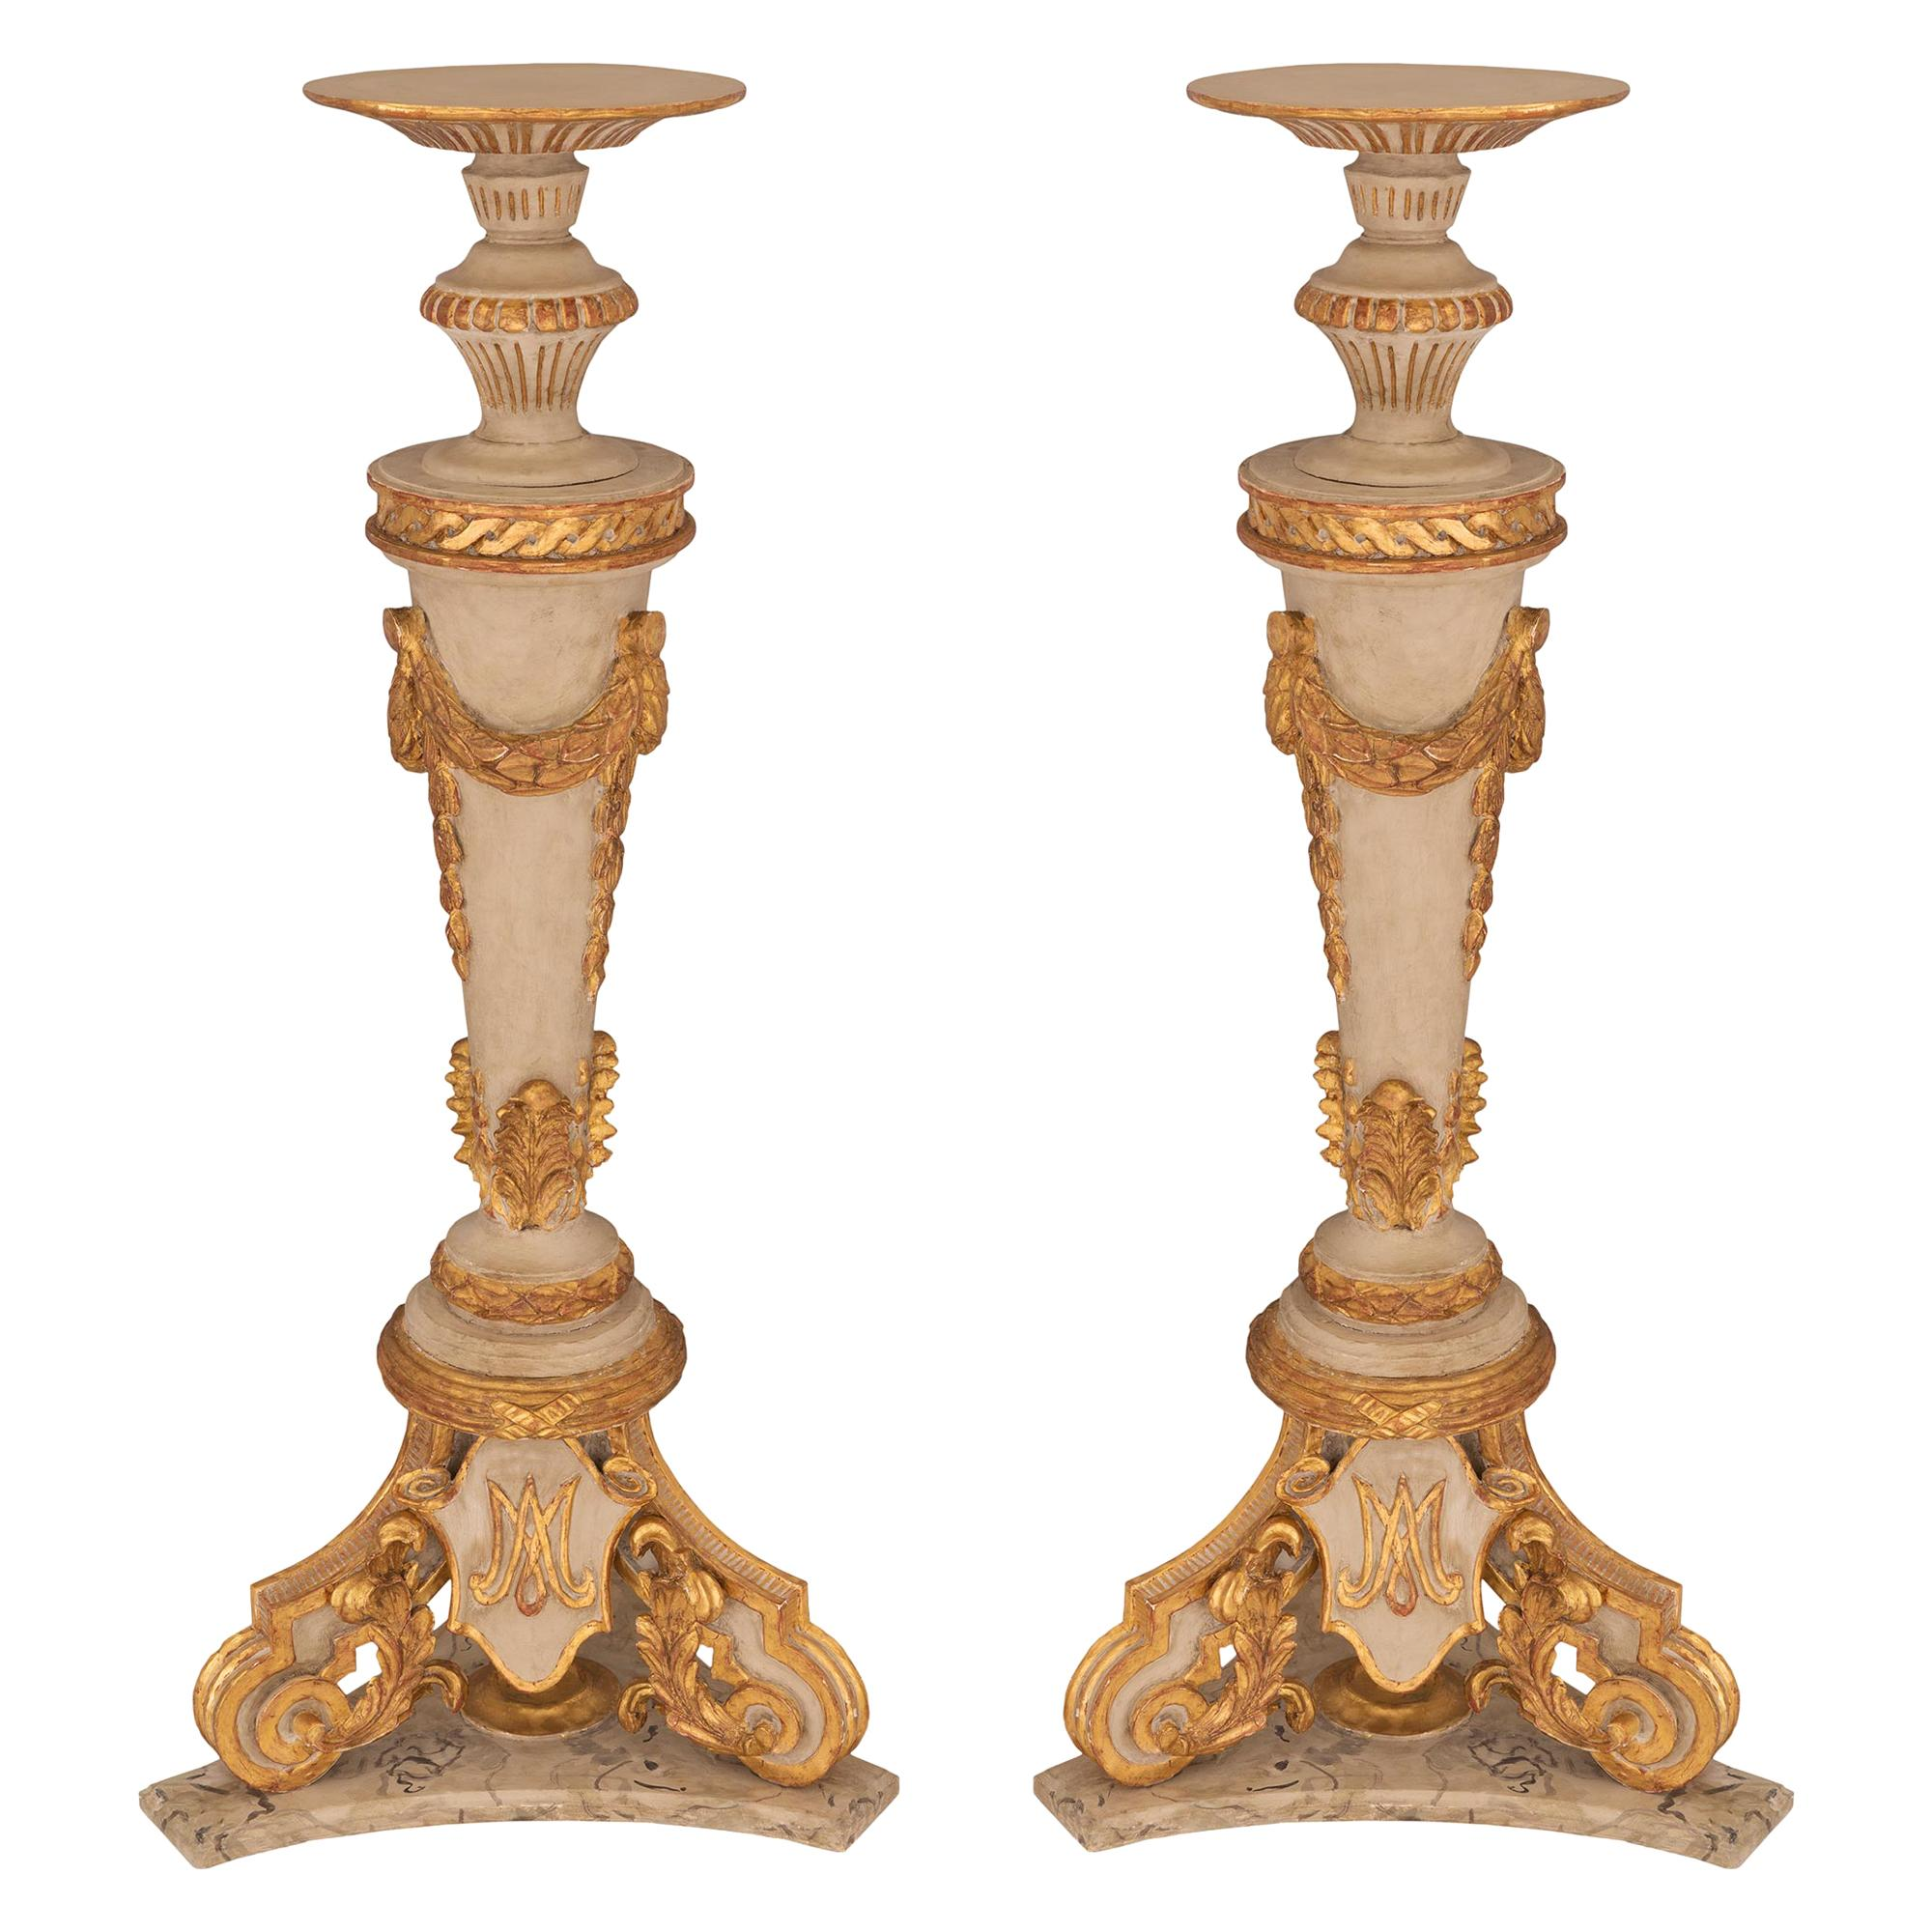 Pair of Italian 18th Century Louis XVI Period Patinated and Gilt Torchieres